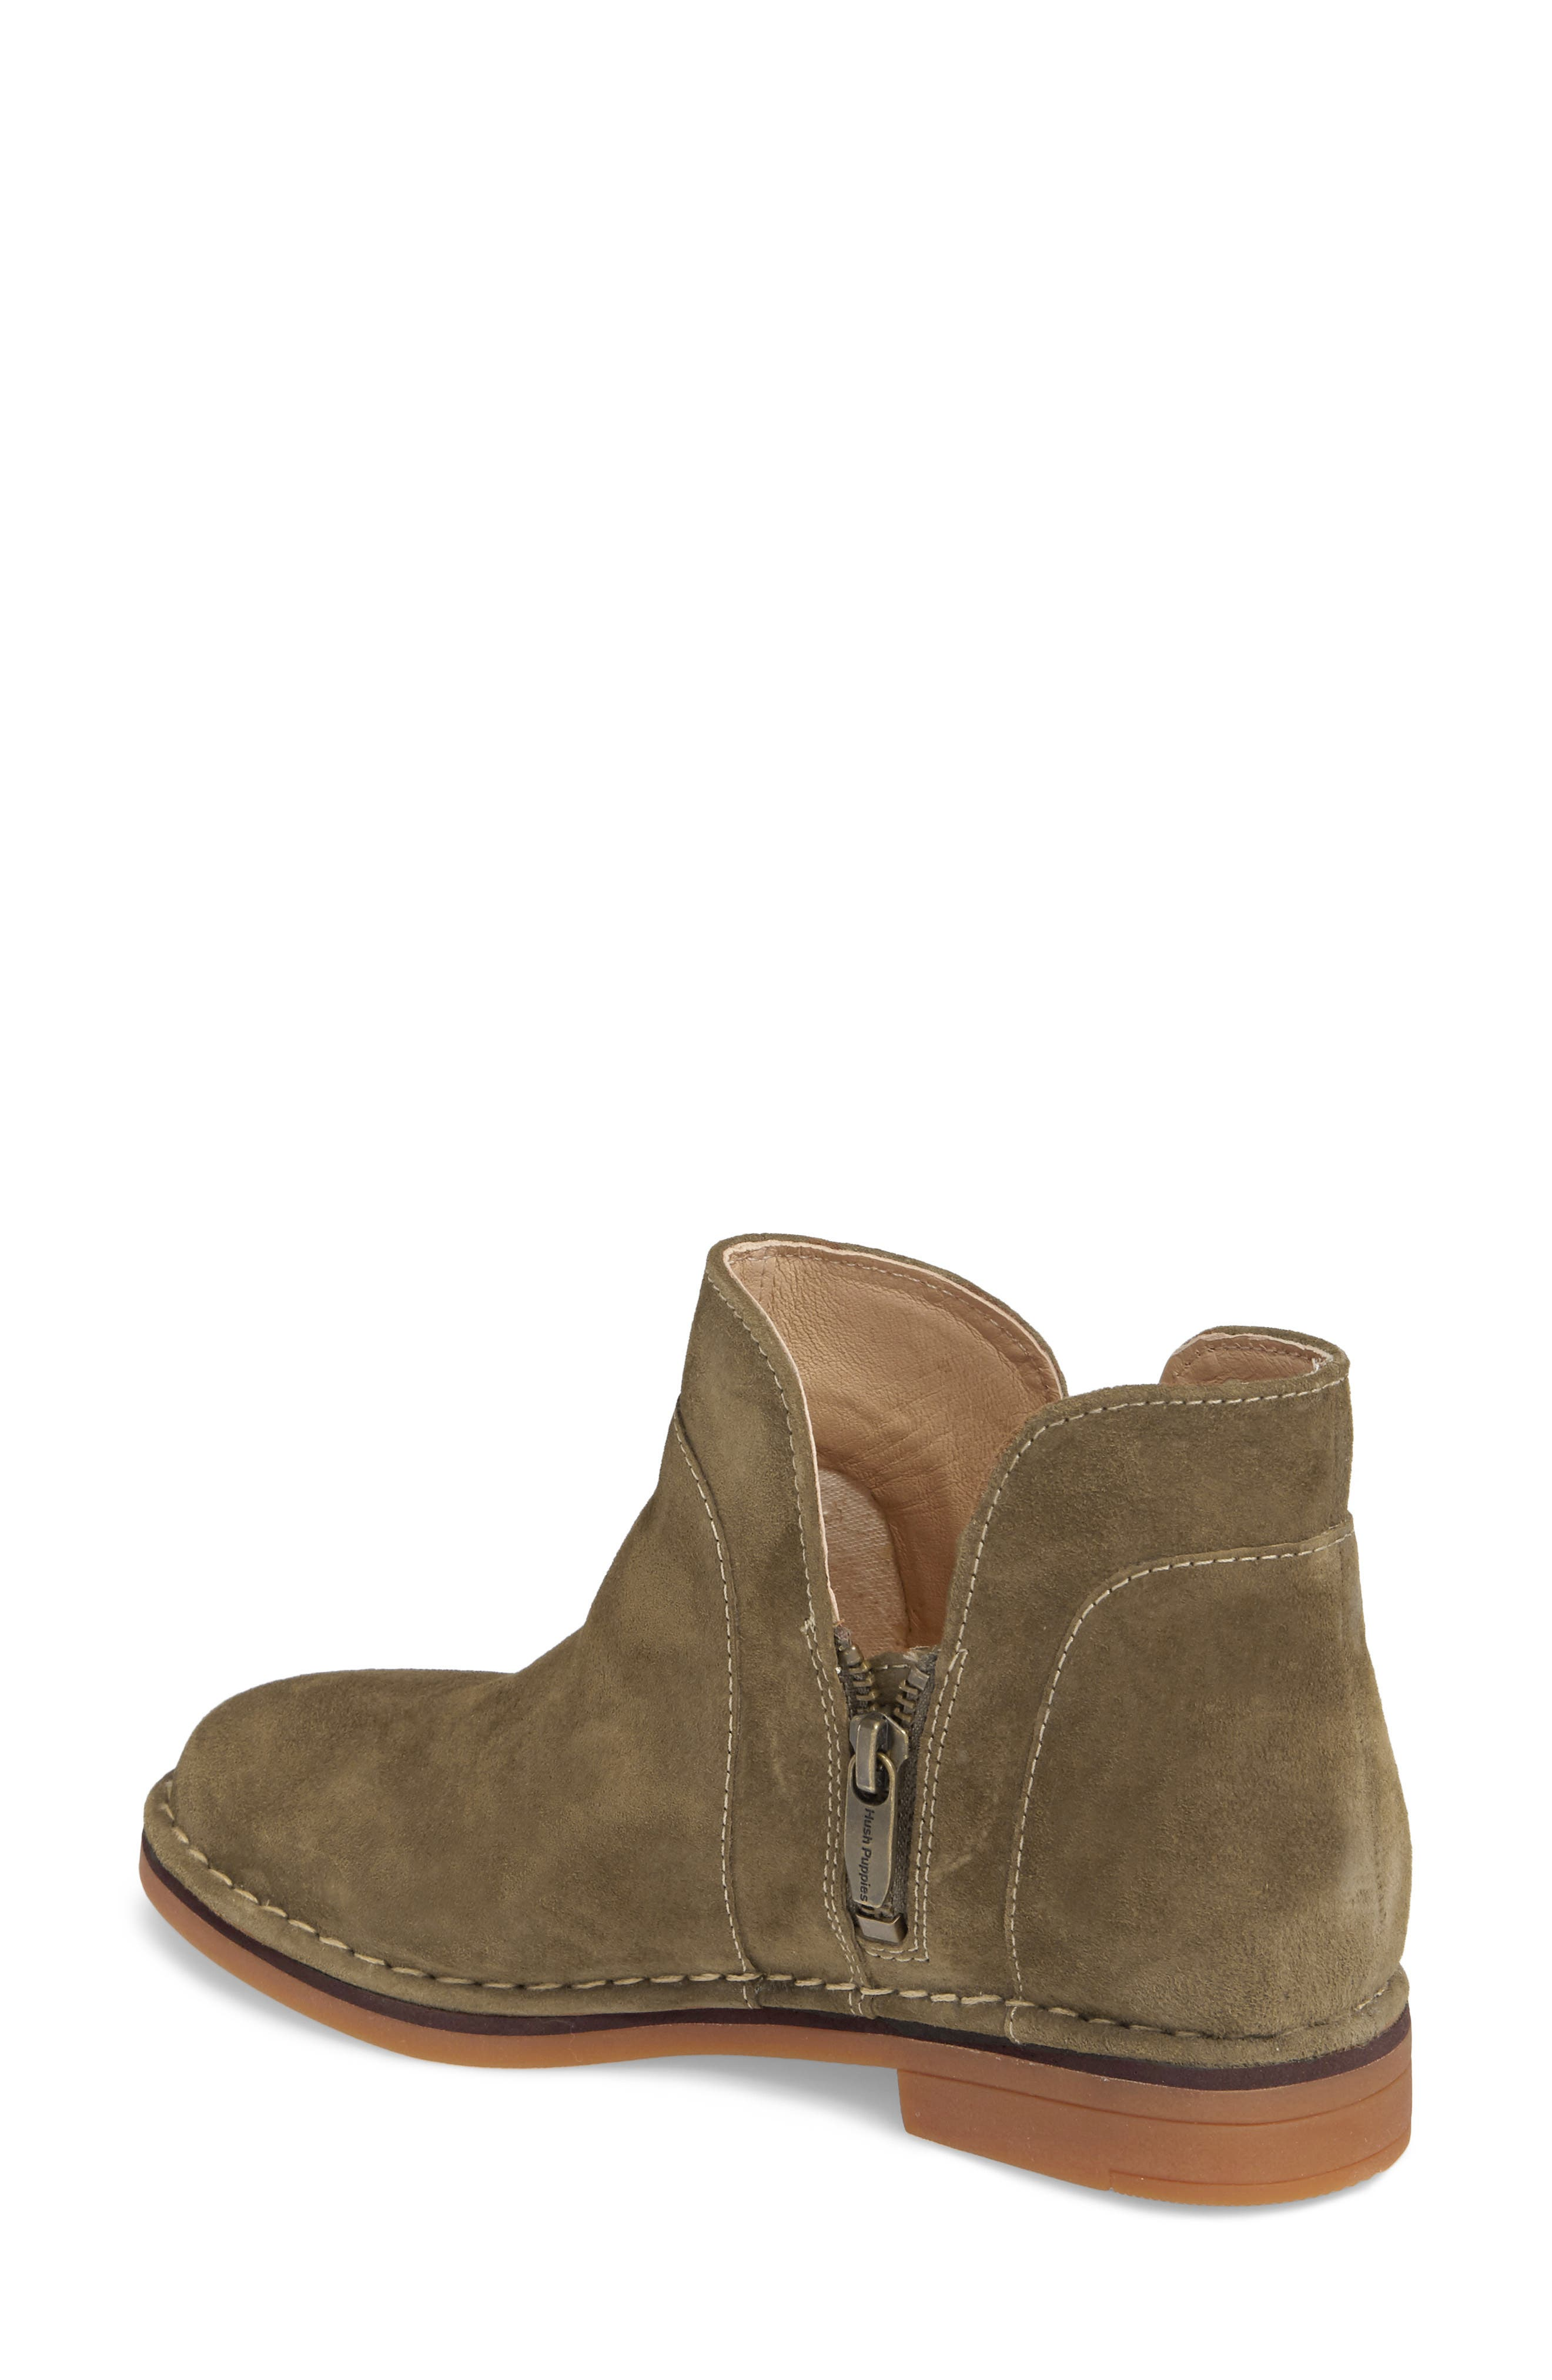 Claudia Catelyn Bootie,                             Alternate thumbnail 6, color,